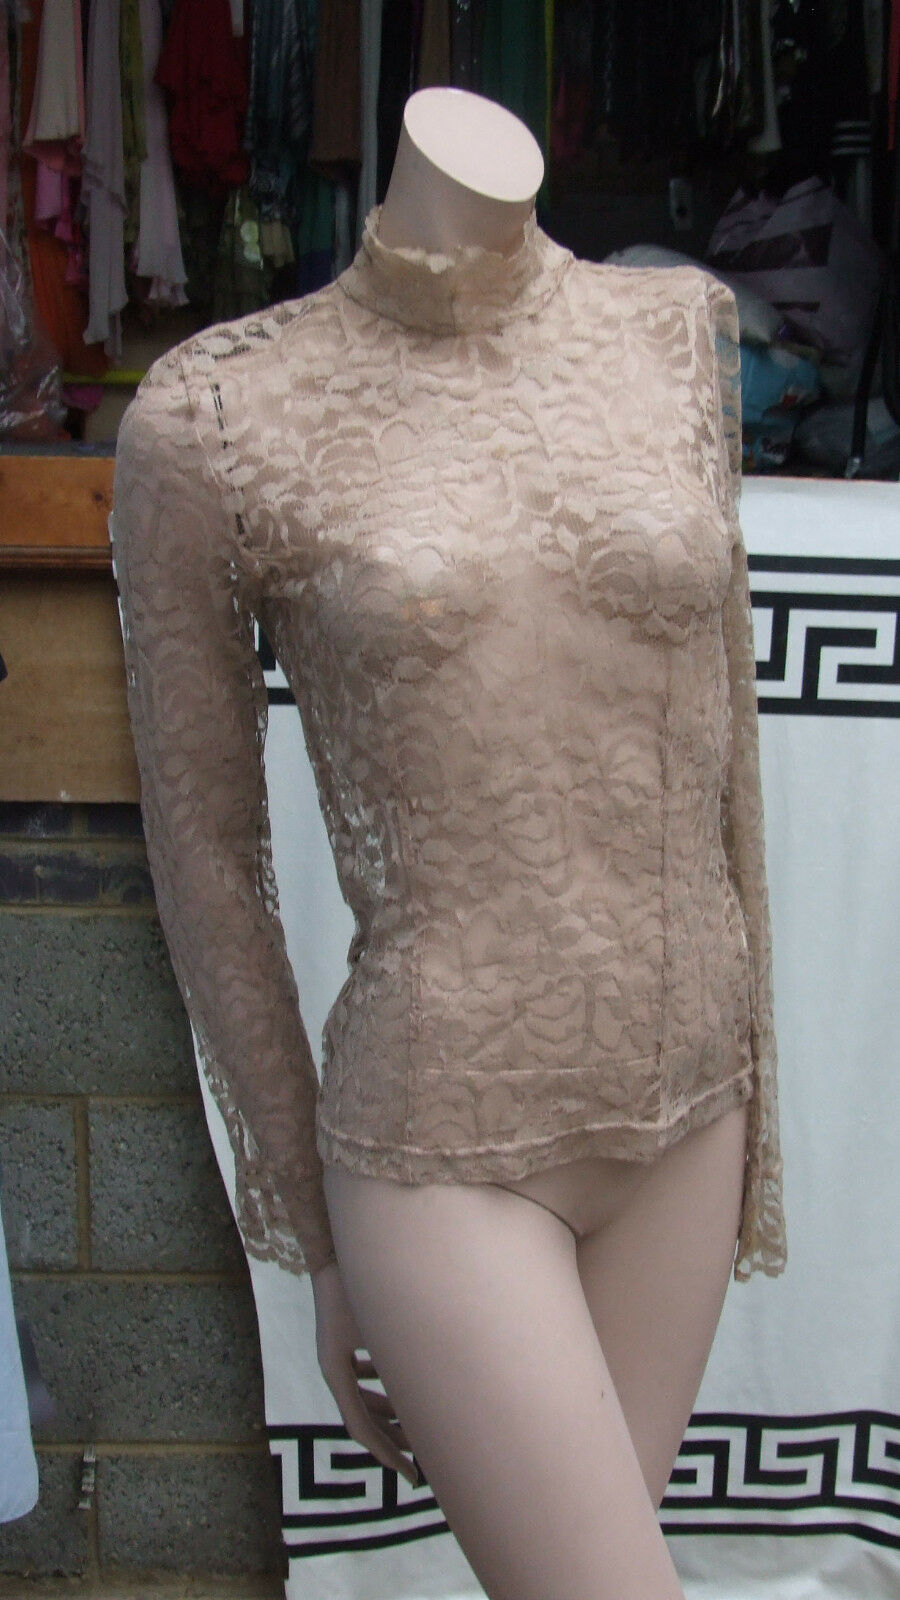 Fabulous Beige Lace Stretchy Lacy Long Sleeve High Neck Luxurious Top